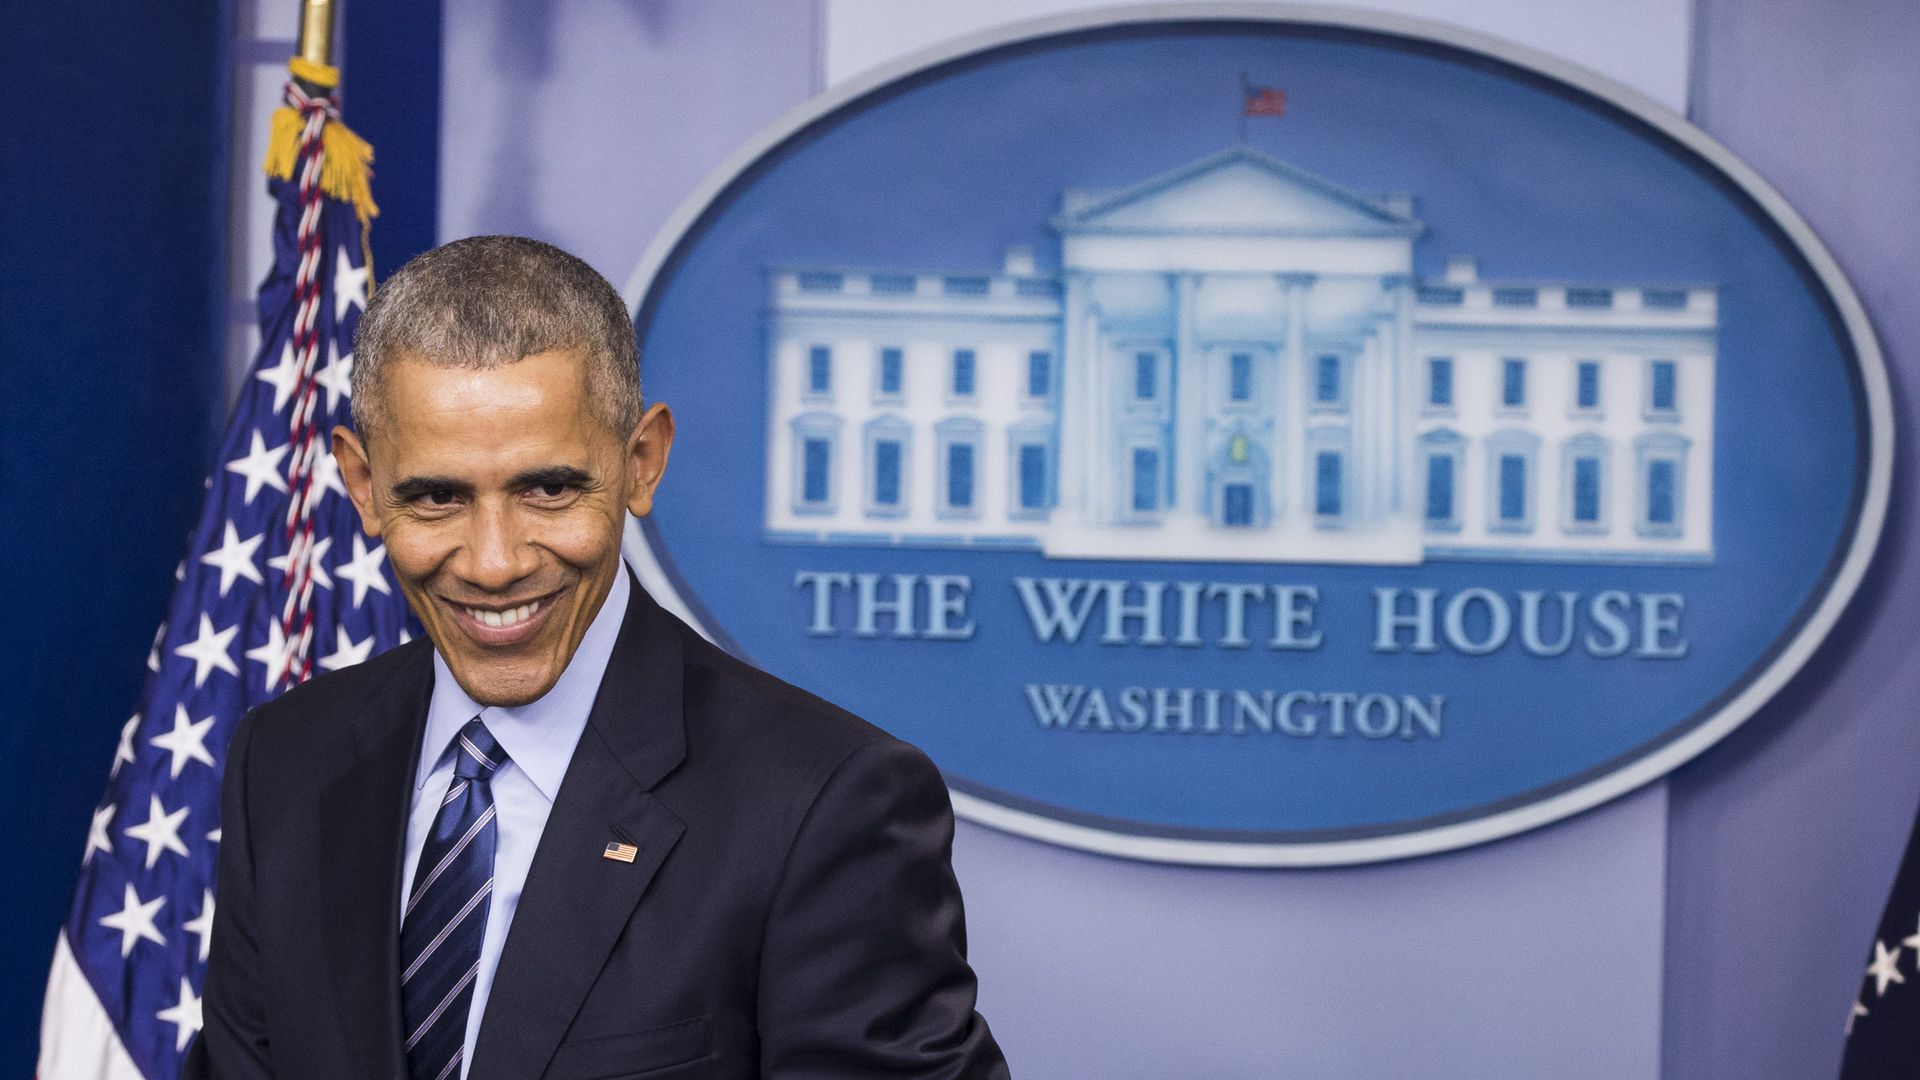 Then-President Obama, smiling, in the White House briefing room.